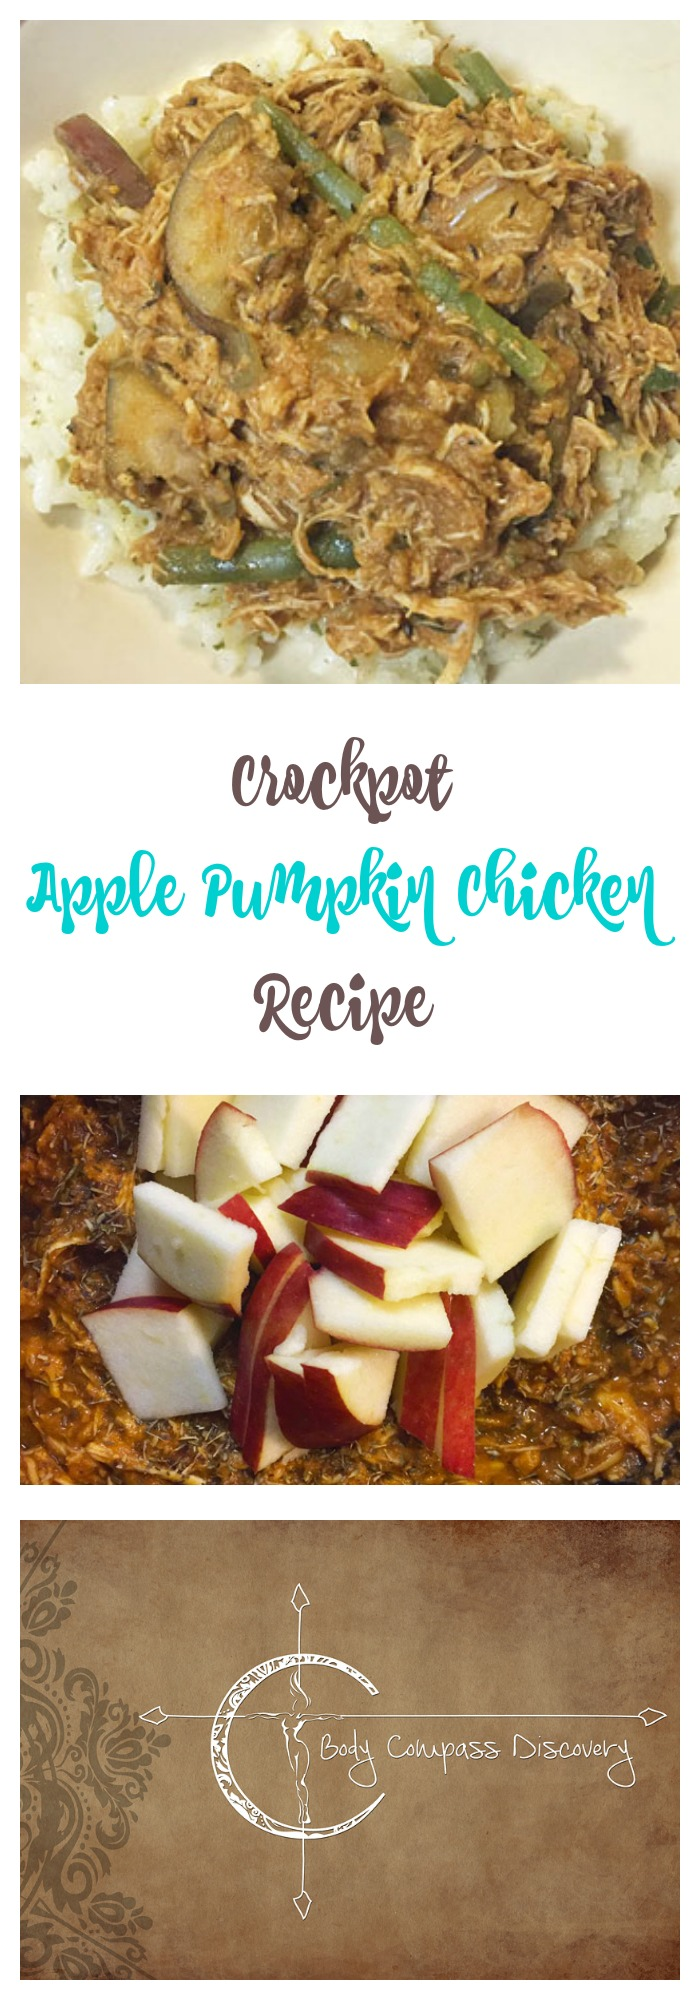 Apple Pumpkin Chicken crockpot recipe